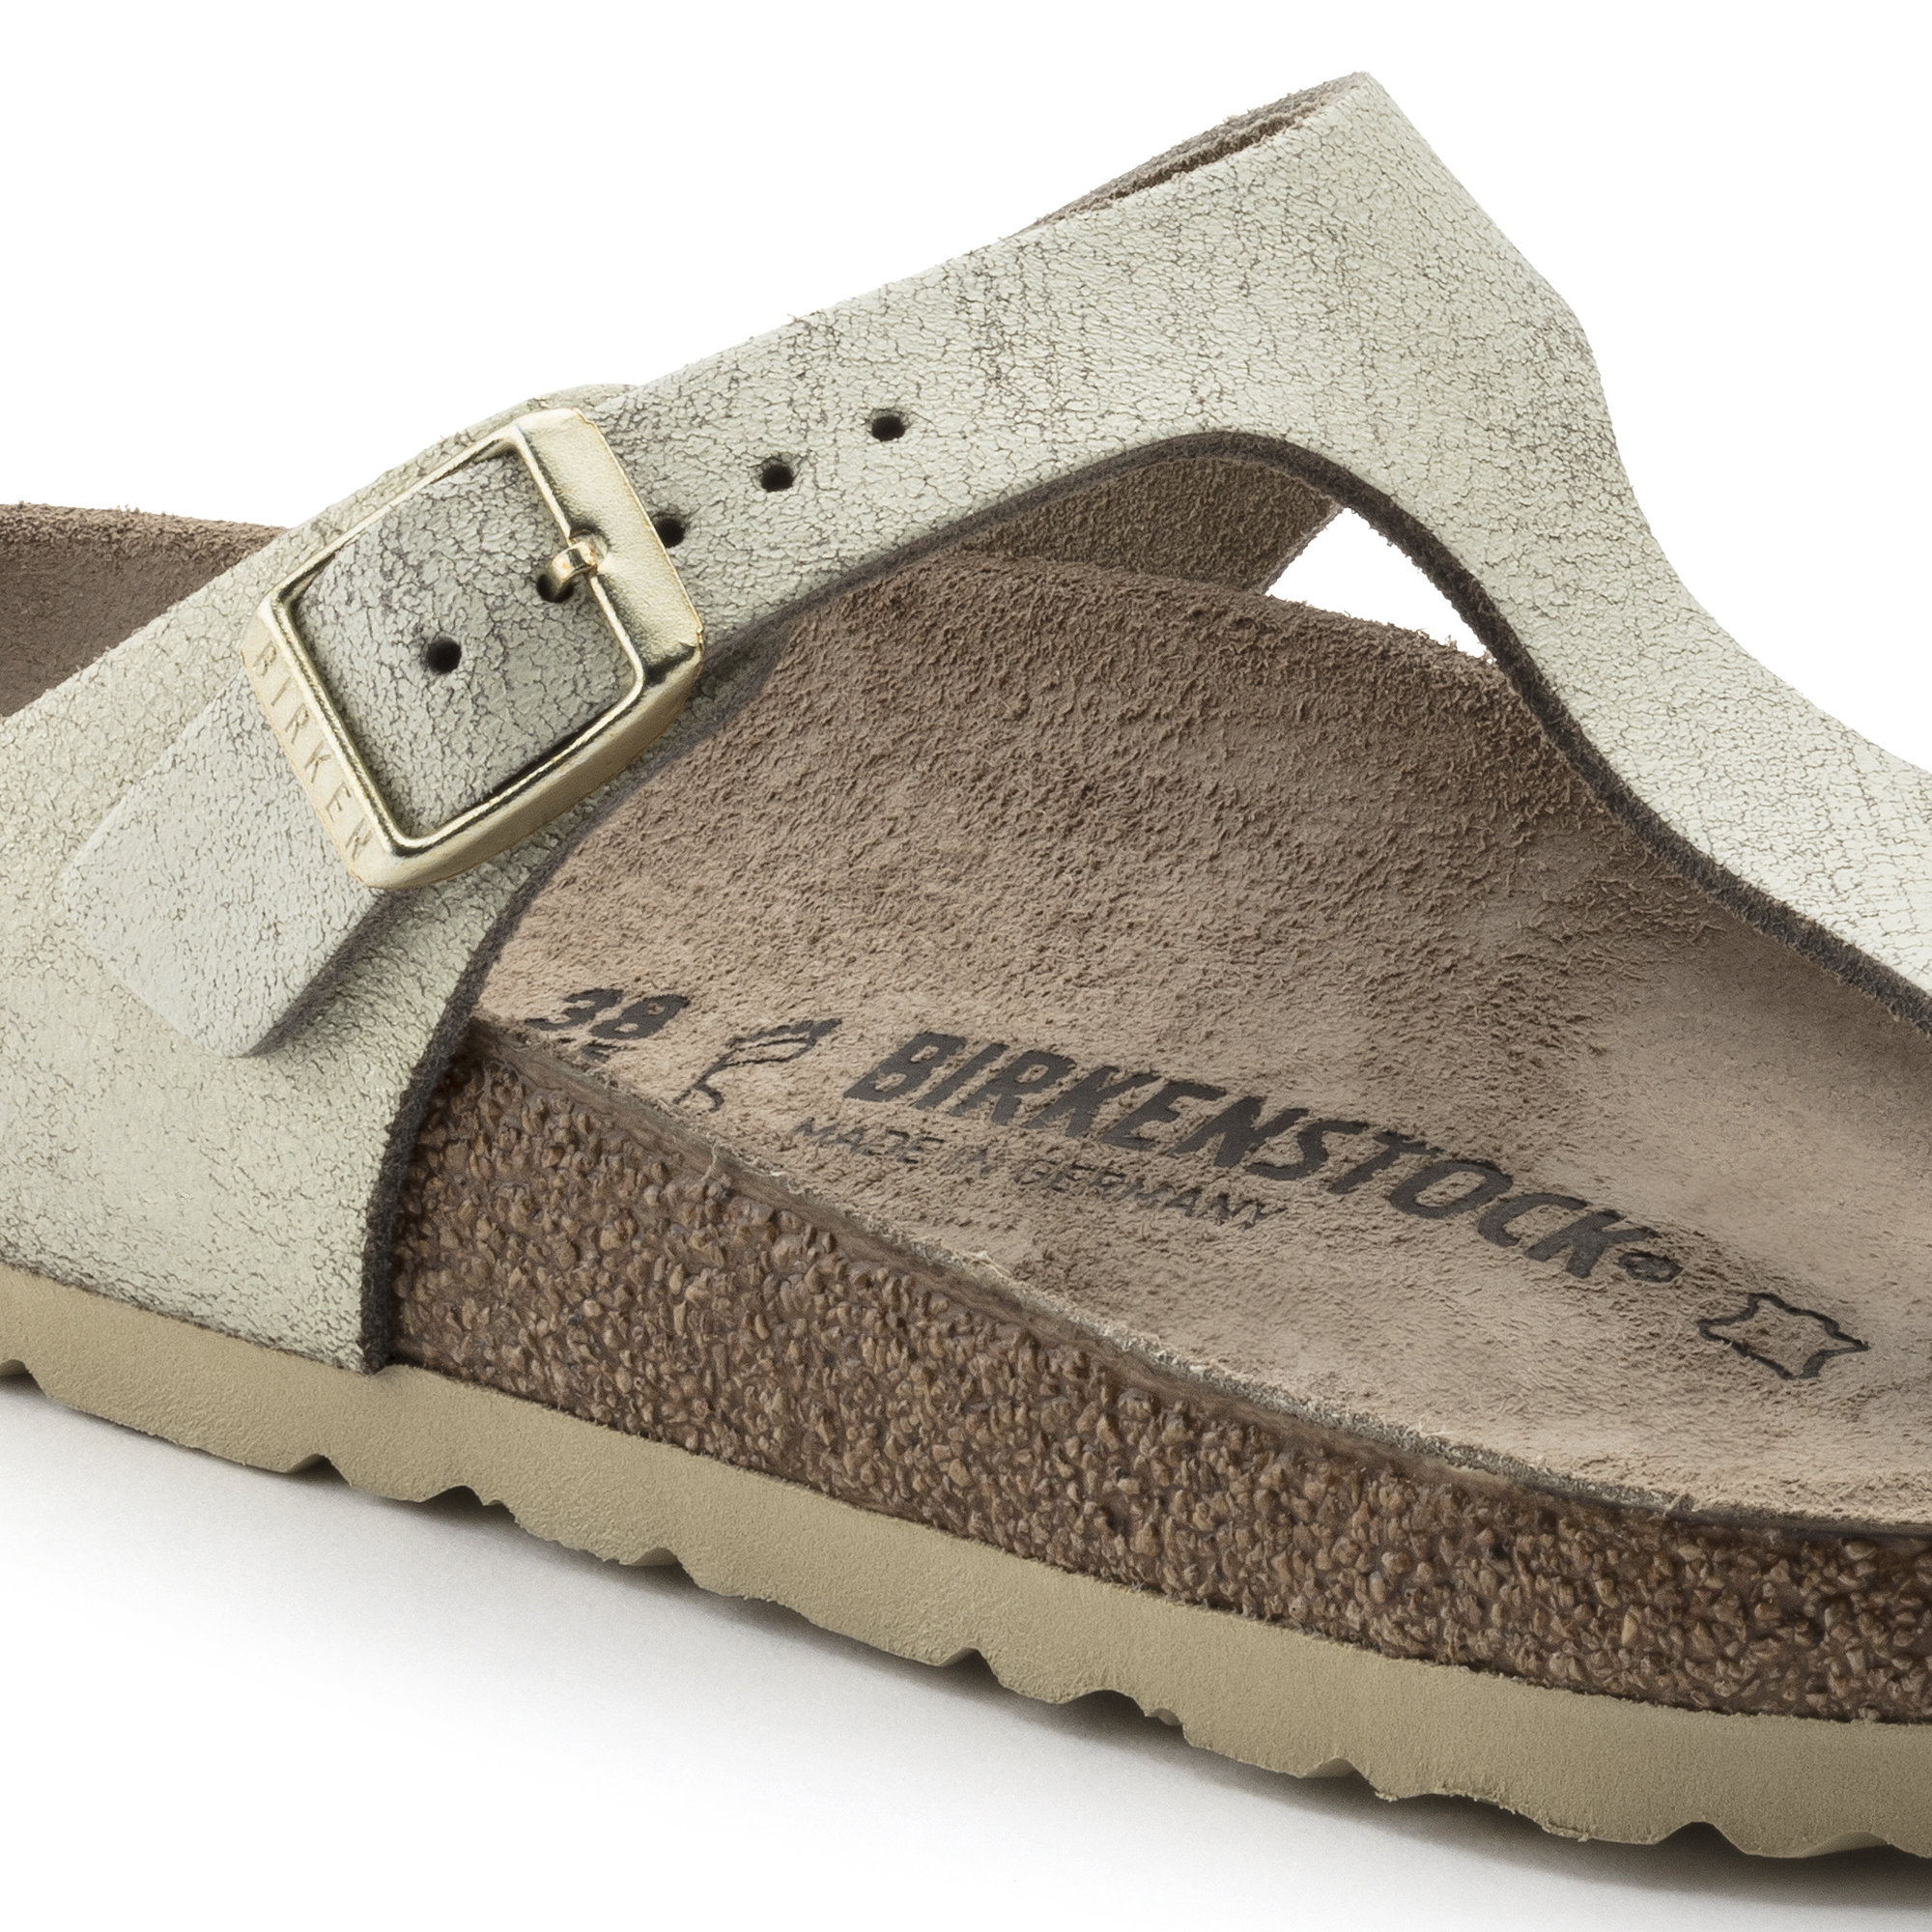 Gizeh Suede Leather Washed Metallic Cream Gold